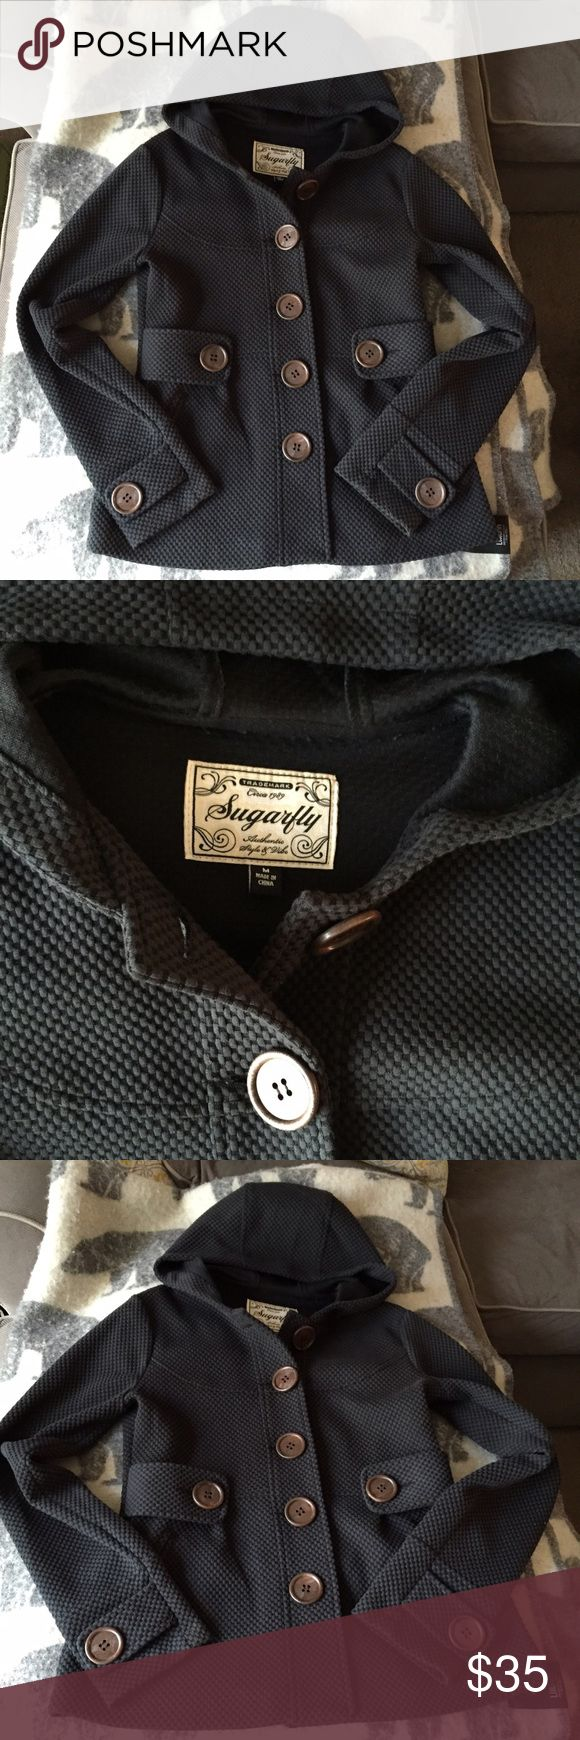 Never Worn Jacket from Sugarfly, size M Perfect condition, slate grey color (almost looks blue) with brown buttons. Never worn outside. Beautiful unique tailored jacket. Sugarfly Jackets & Coats Pea Coats